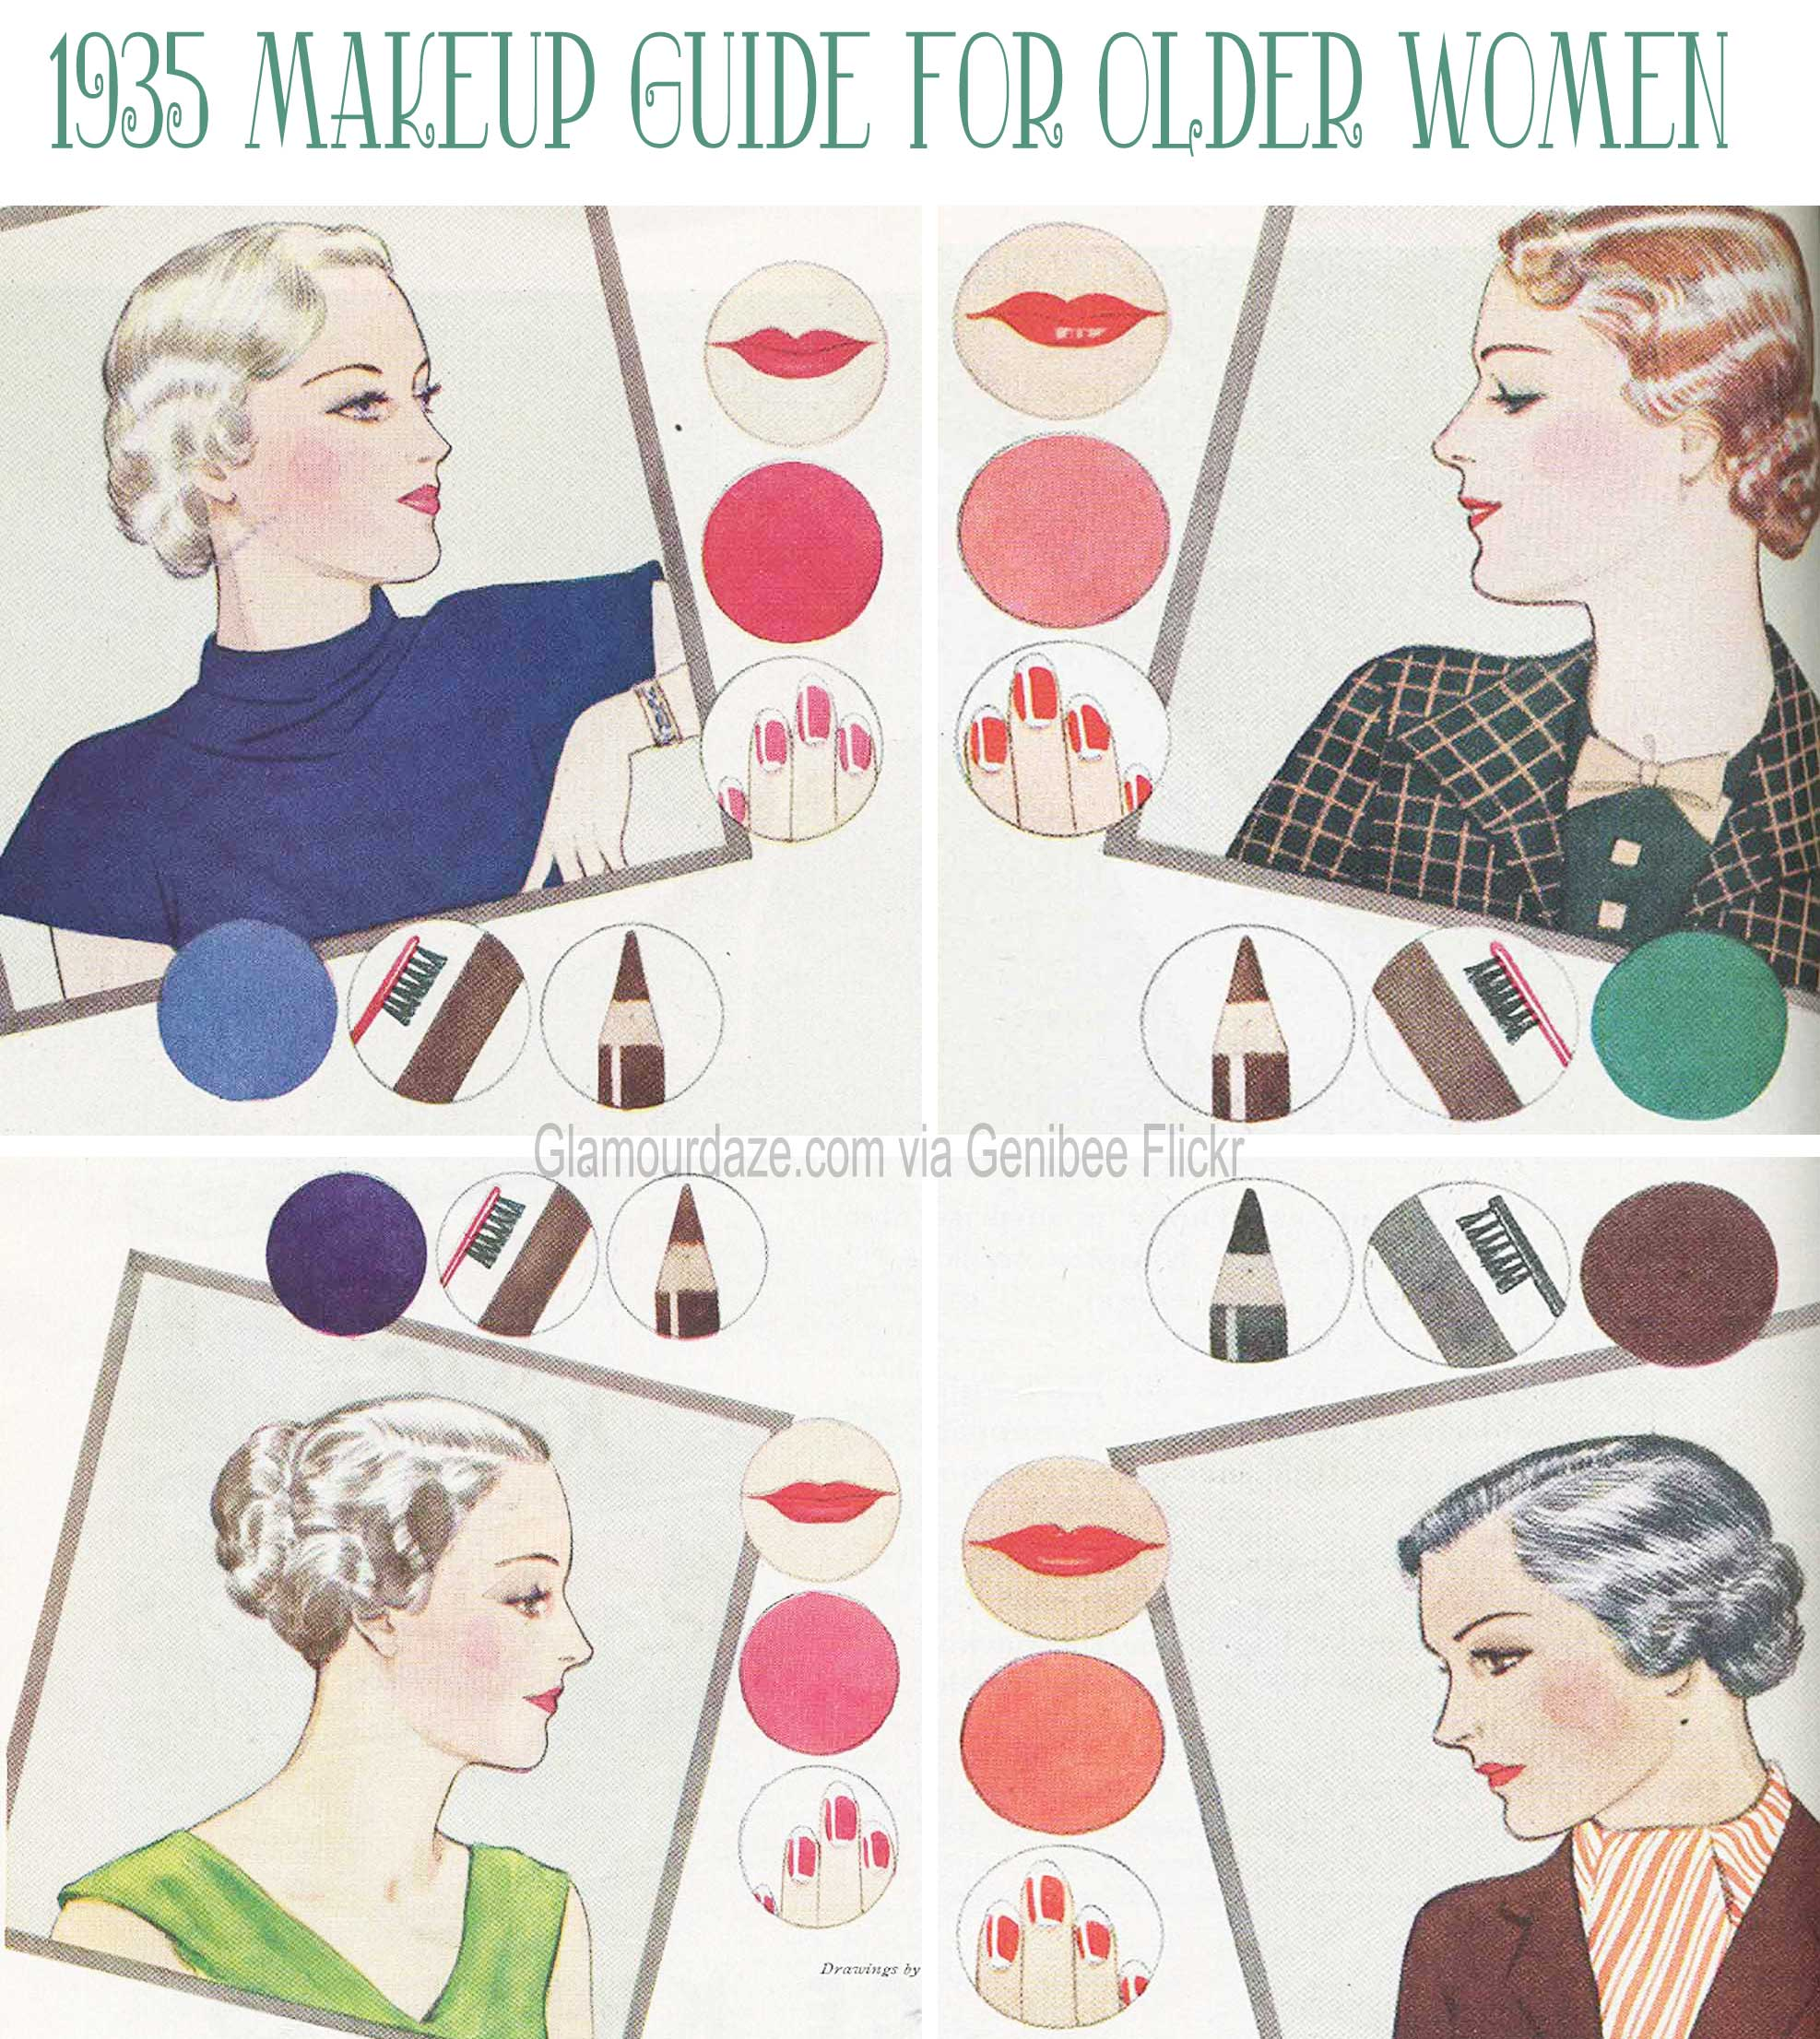 1935-Makeup-Guide-for-Older-Women